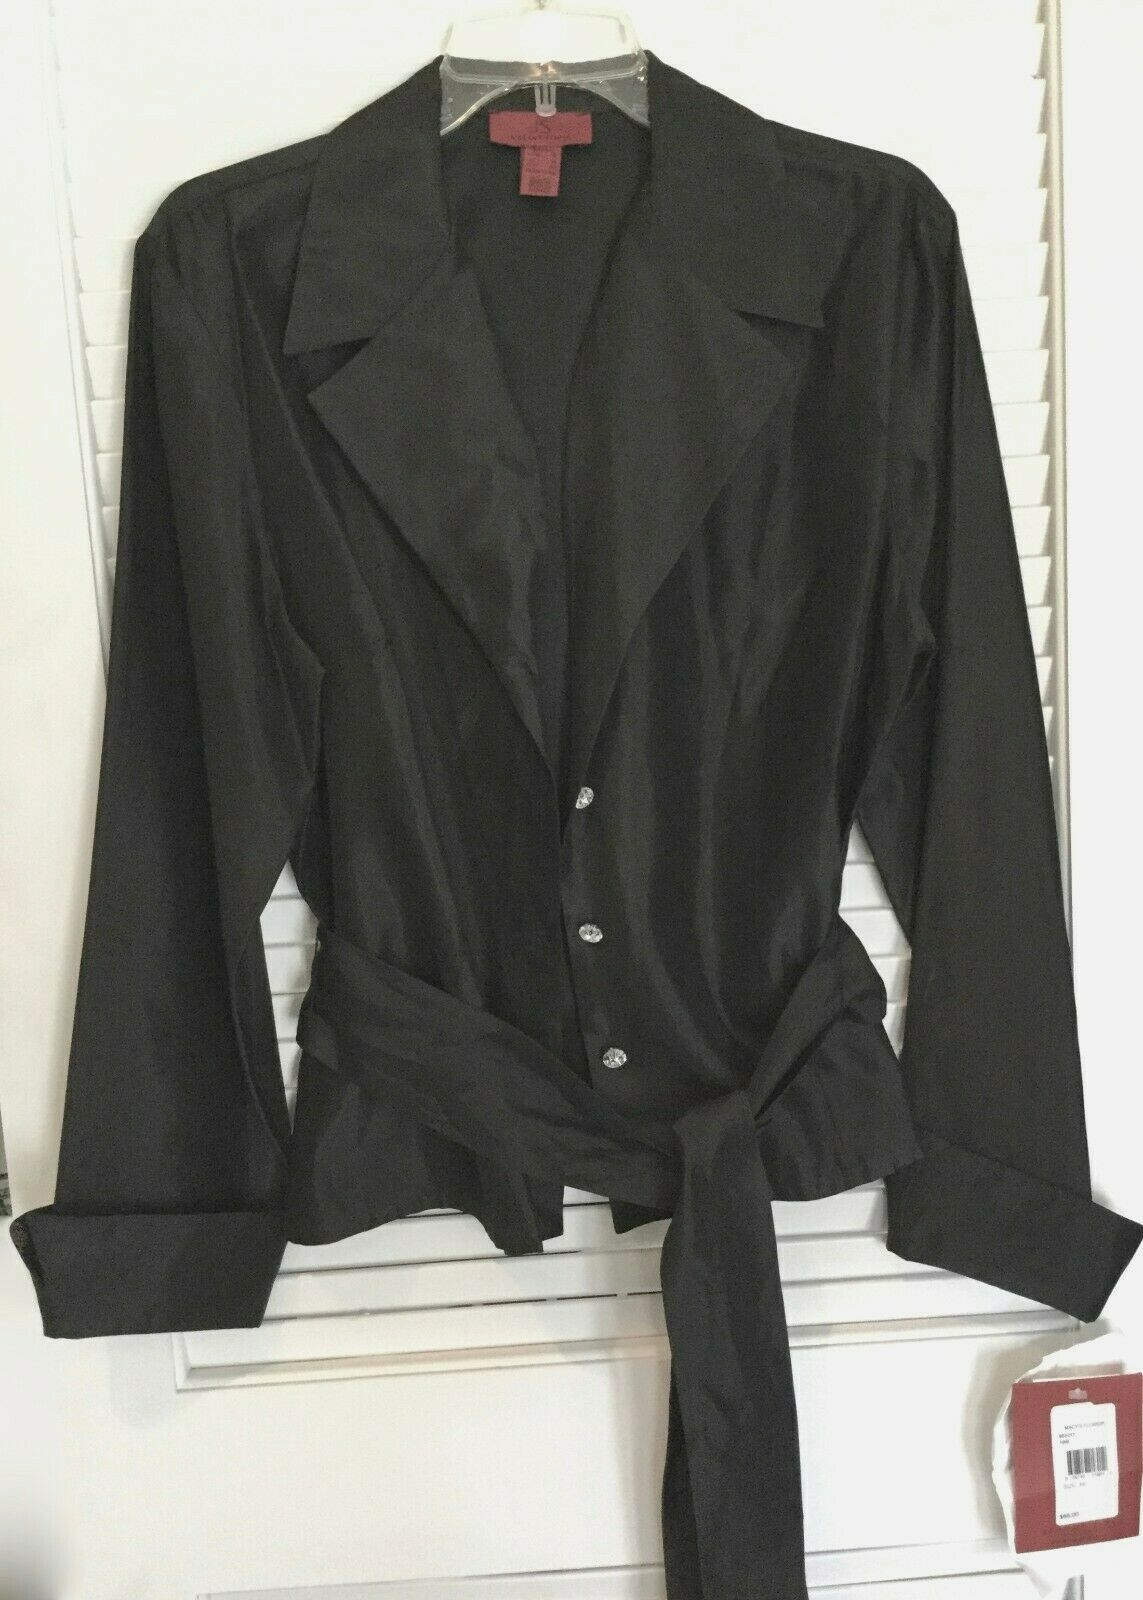 JS Collection Formal Black Top with Diamond Like Buttons - Sz 16 - Value NWT